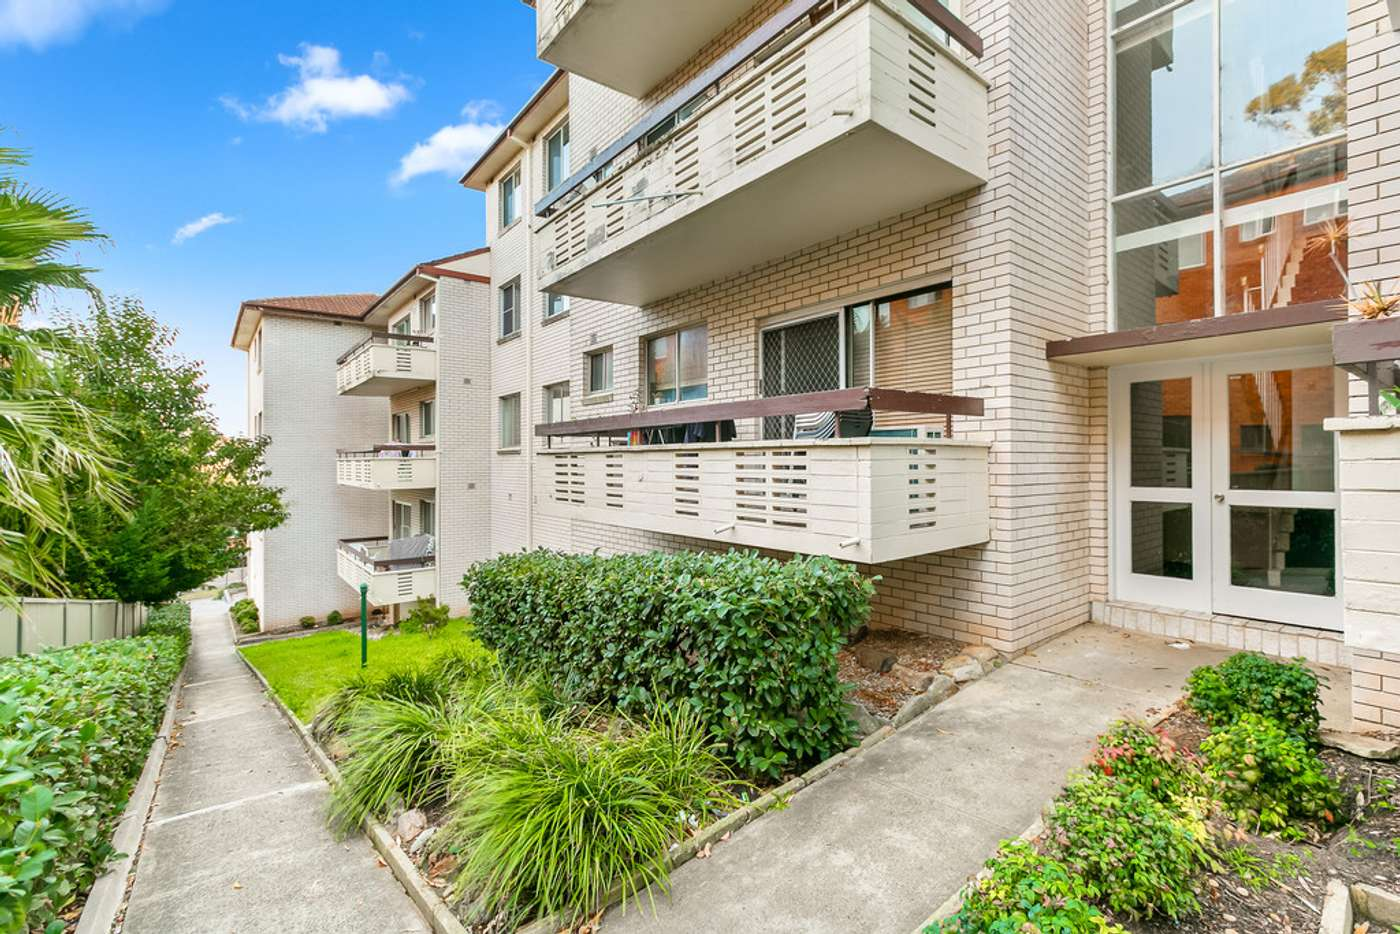 Main view of Homely apartment listing, 12/31 Villiers Street, Rockdale NSW 2216